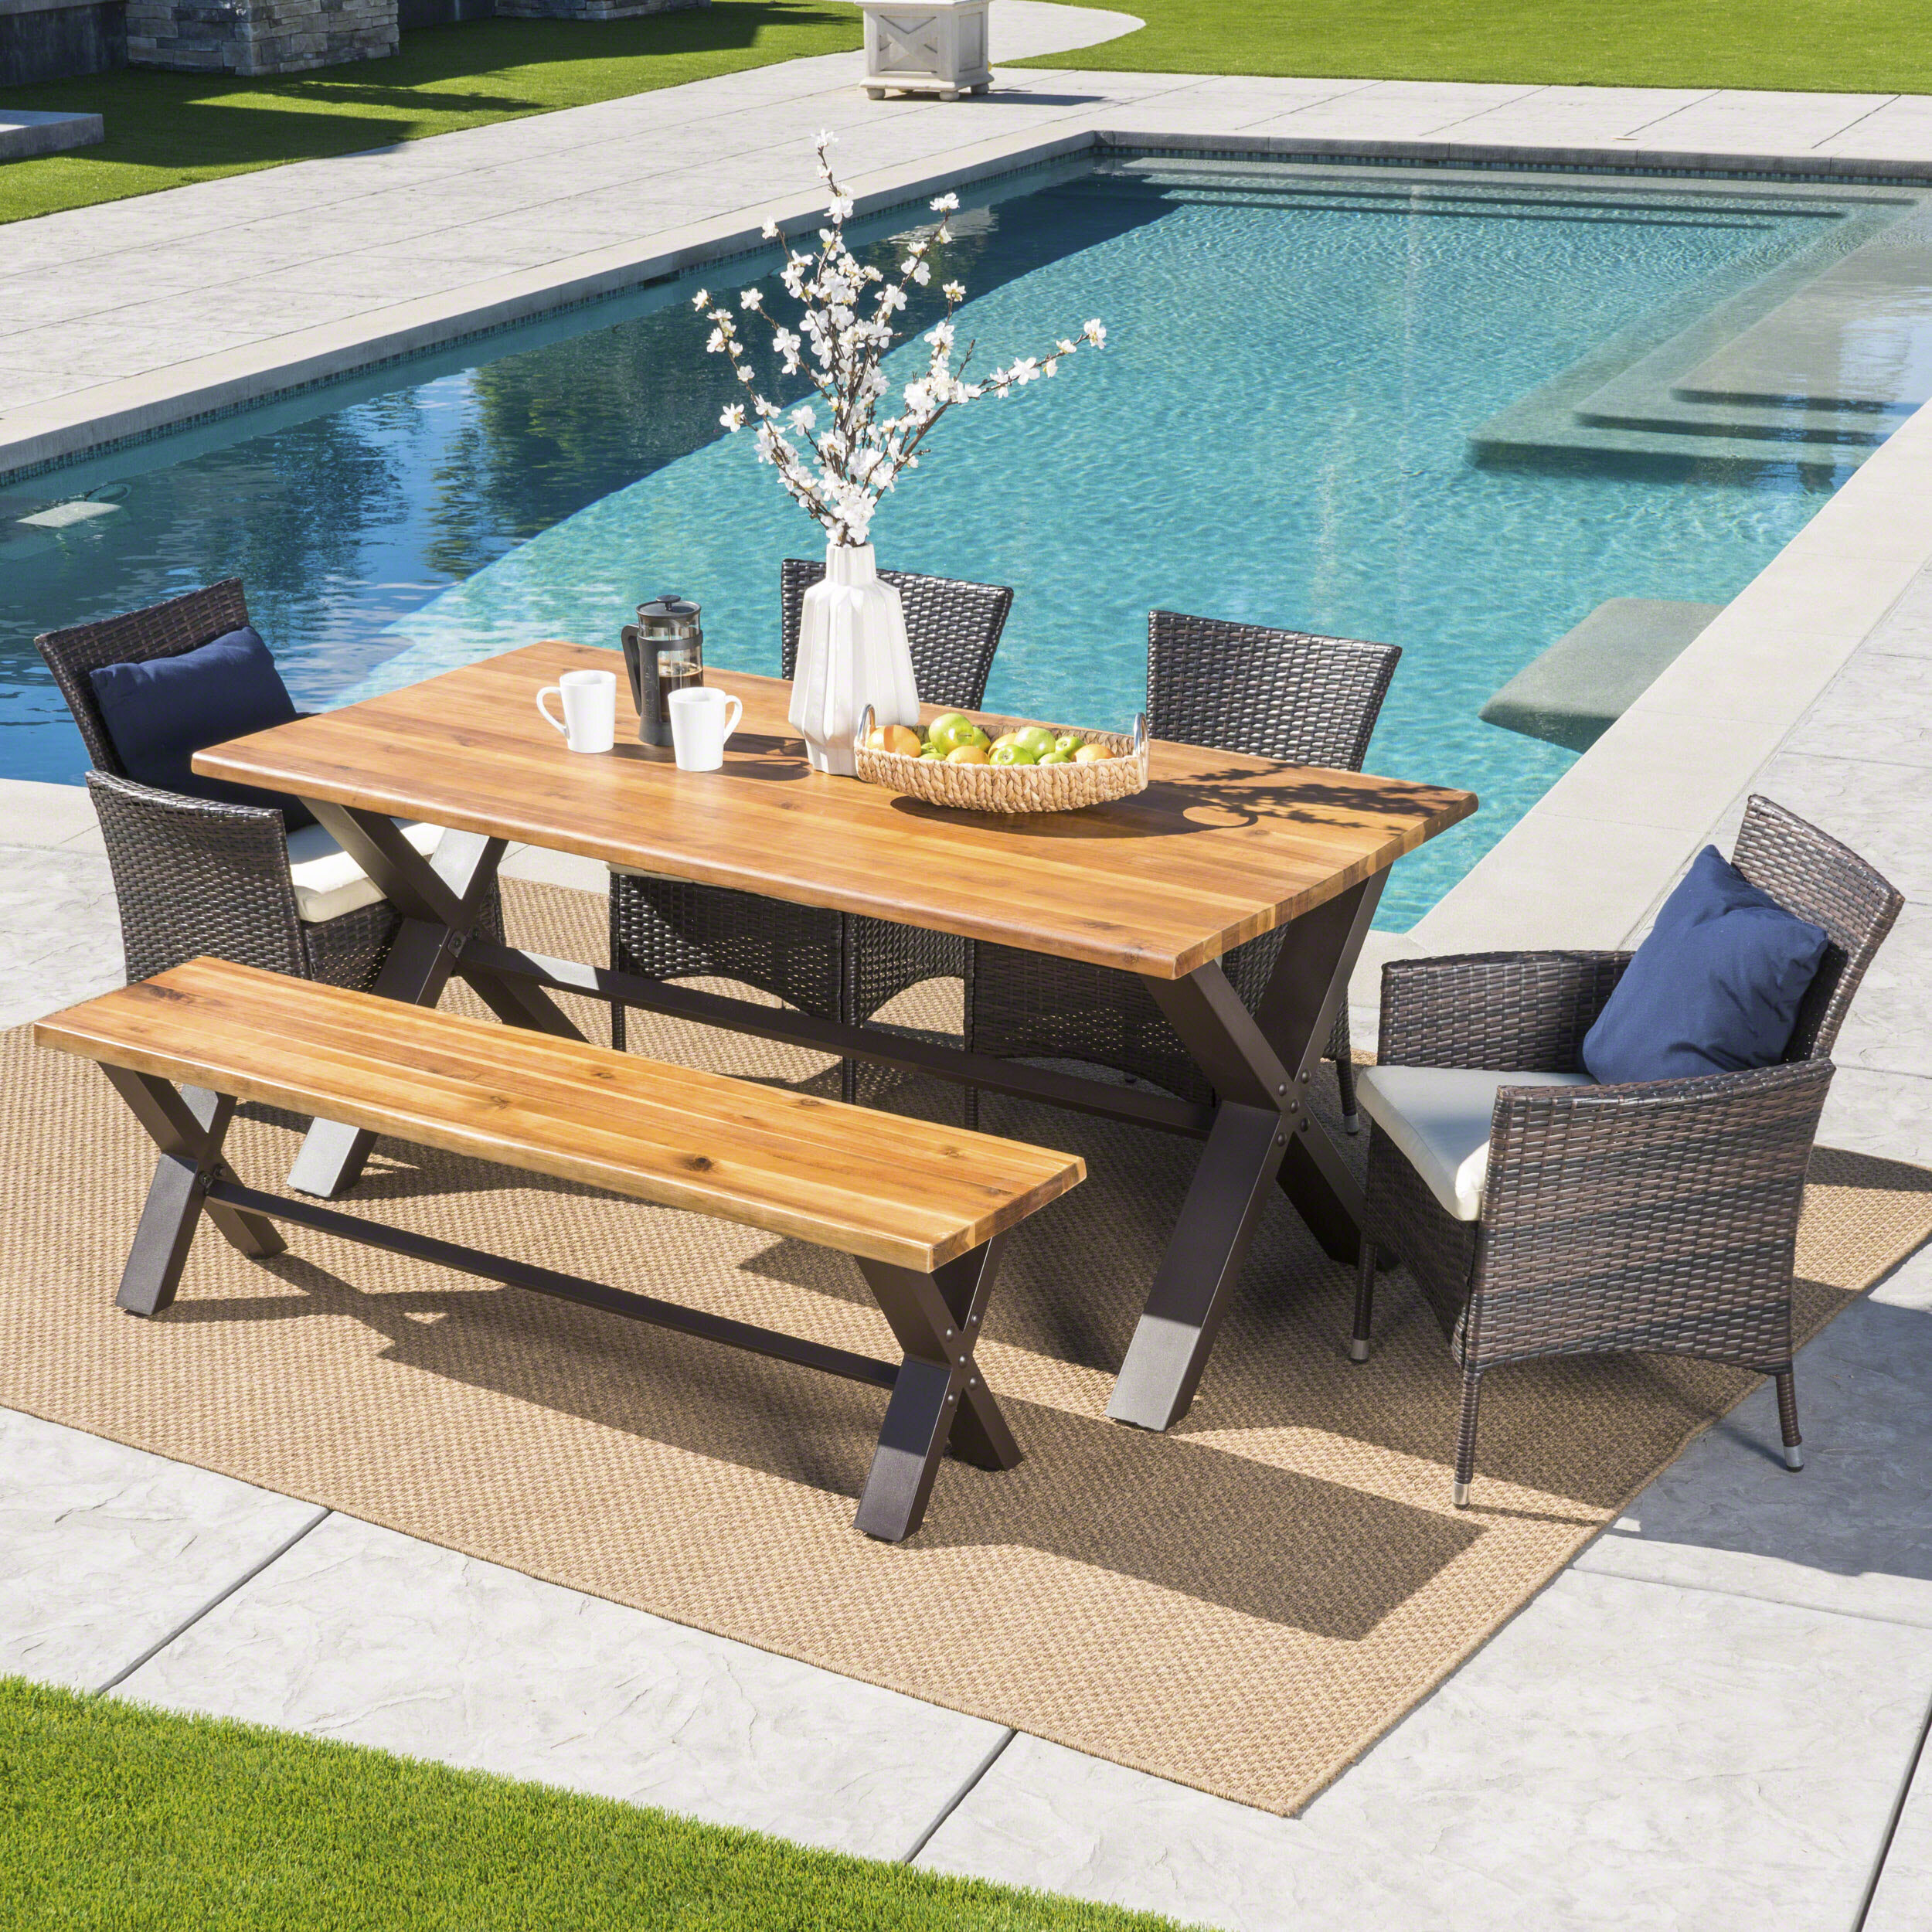 Brayden Studio Arbus Outdoor 6 Piece Dining Set With Cushions | Wayfair